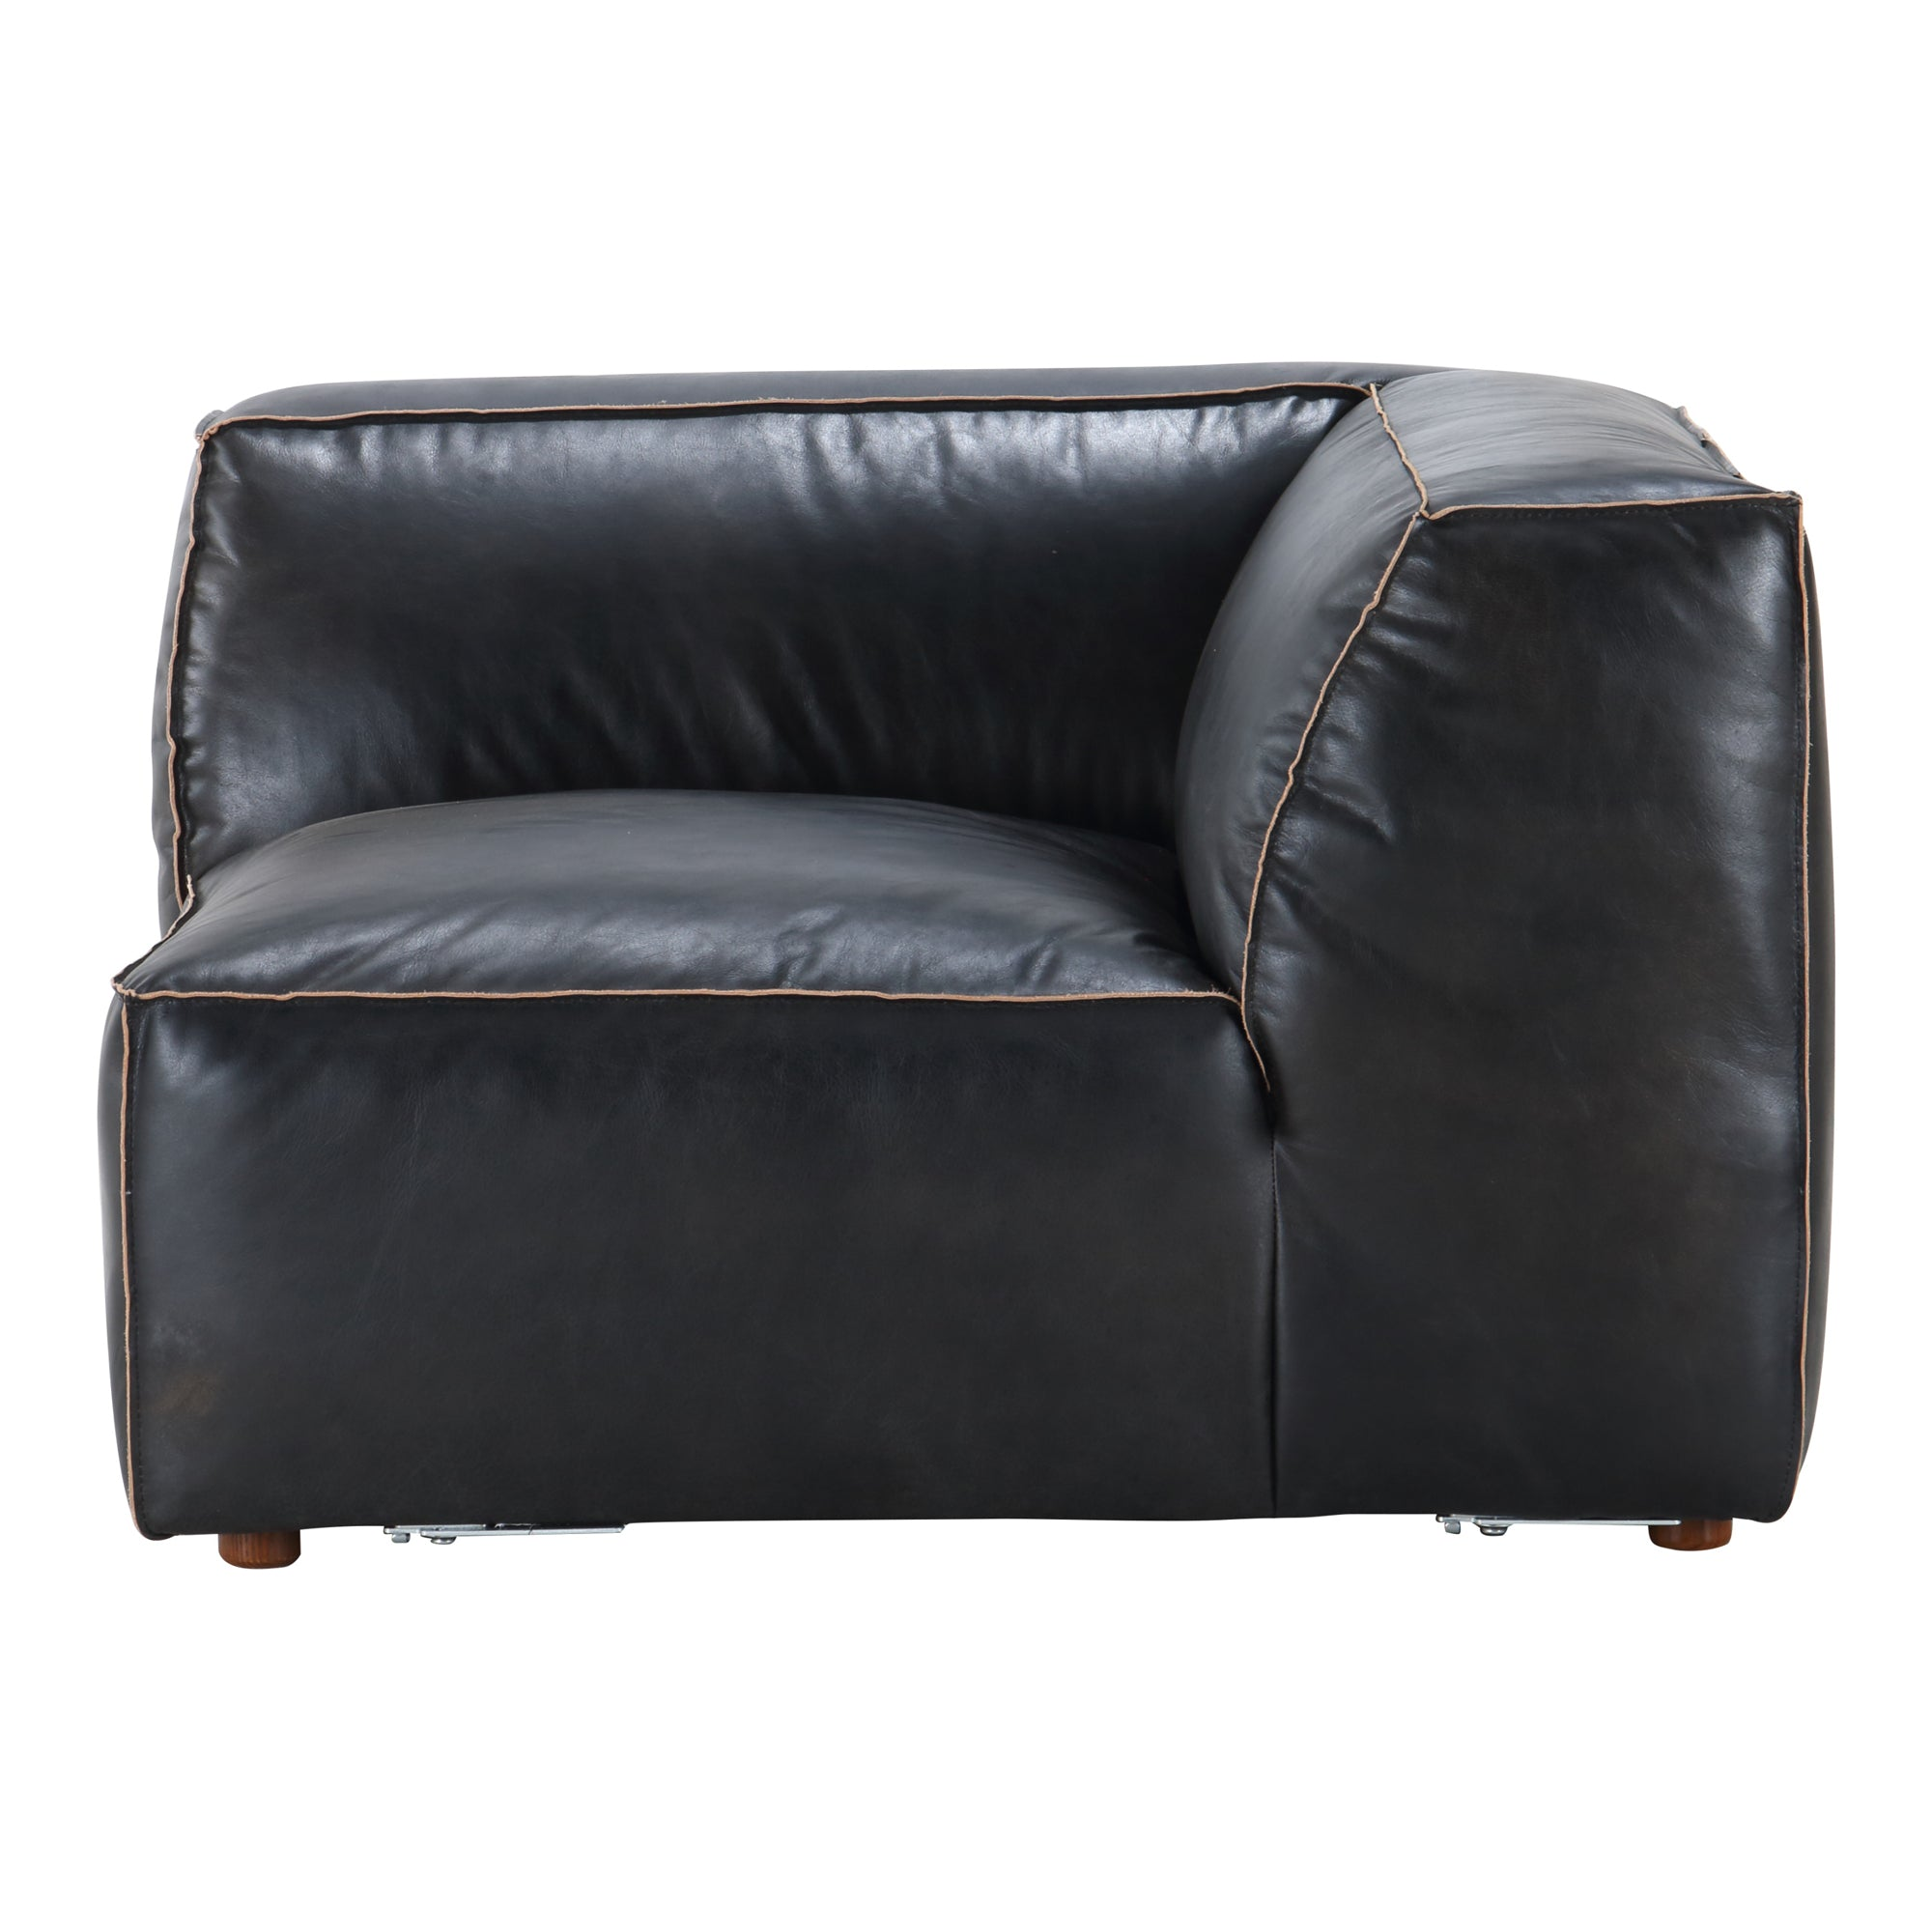 Luxe corner chair, black - Tops-Dress